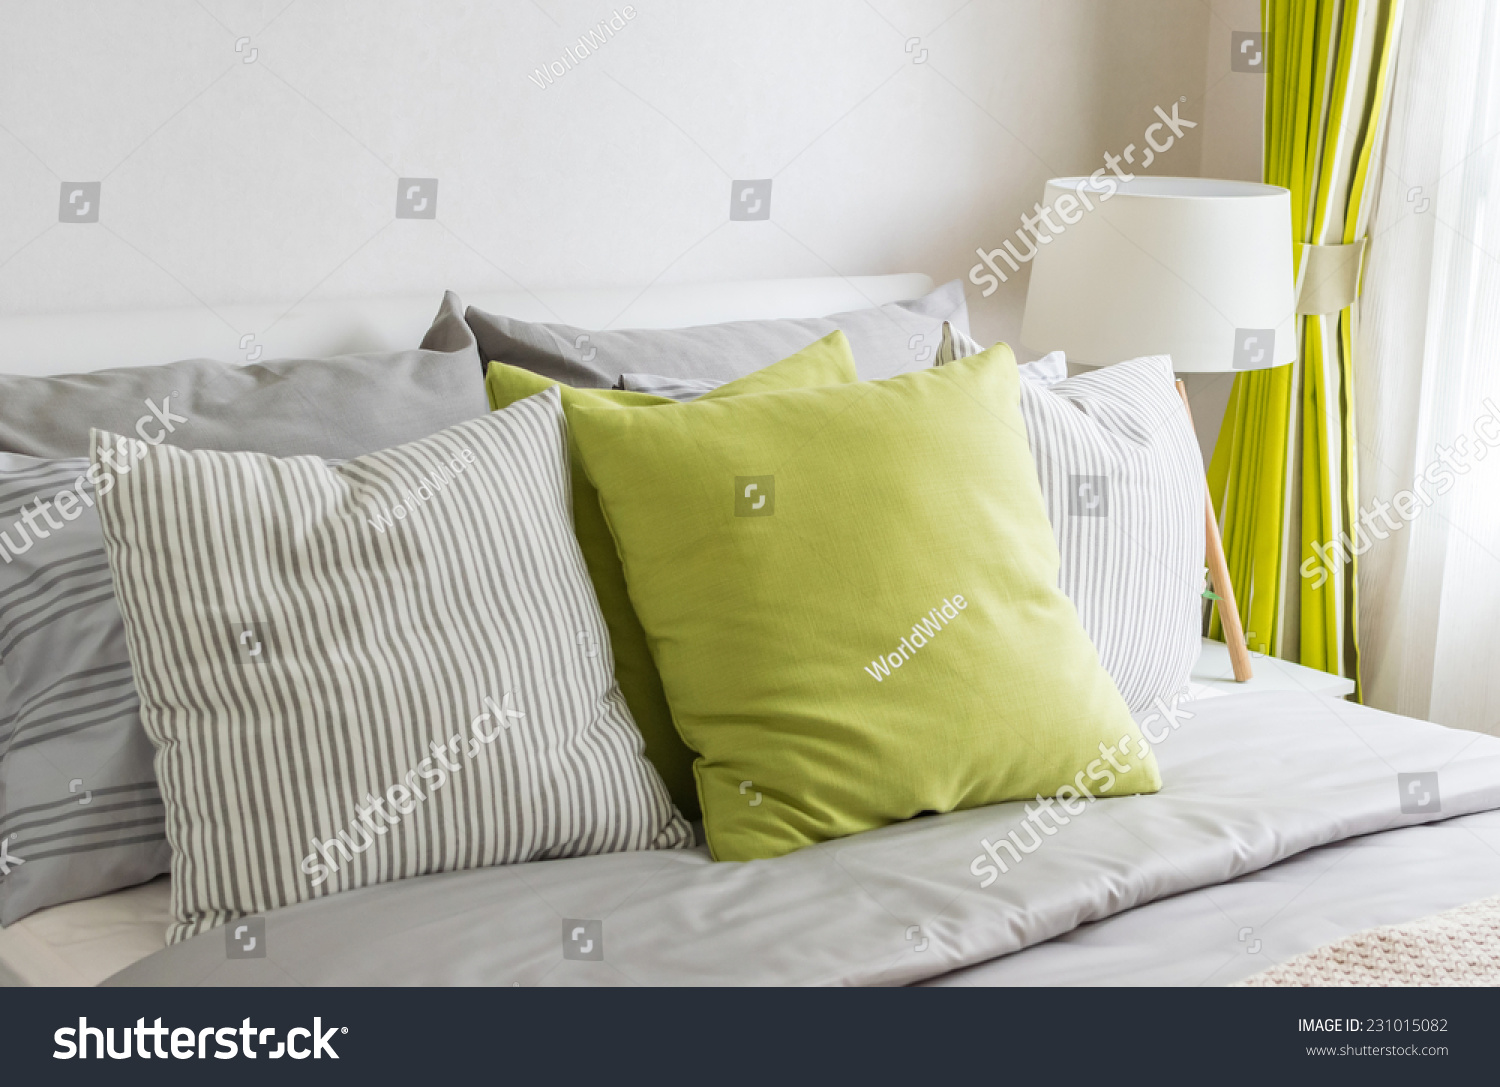 Modern Bedroom Pillows : Modern Bedroom Green Pillow On Bed Stock Photo 231015082 - Shutterstock